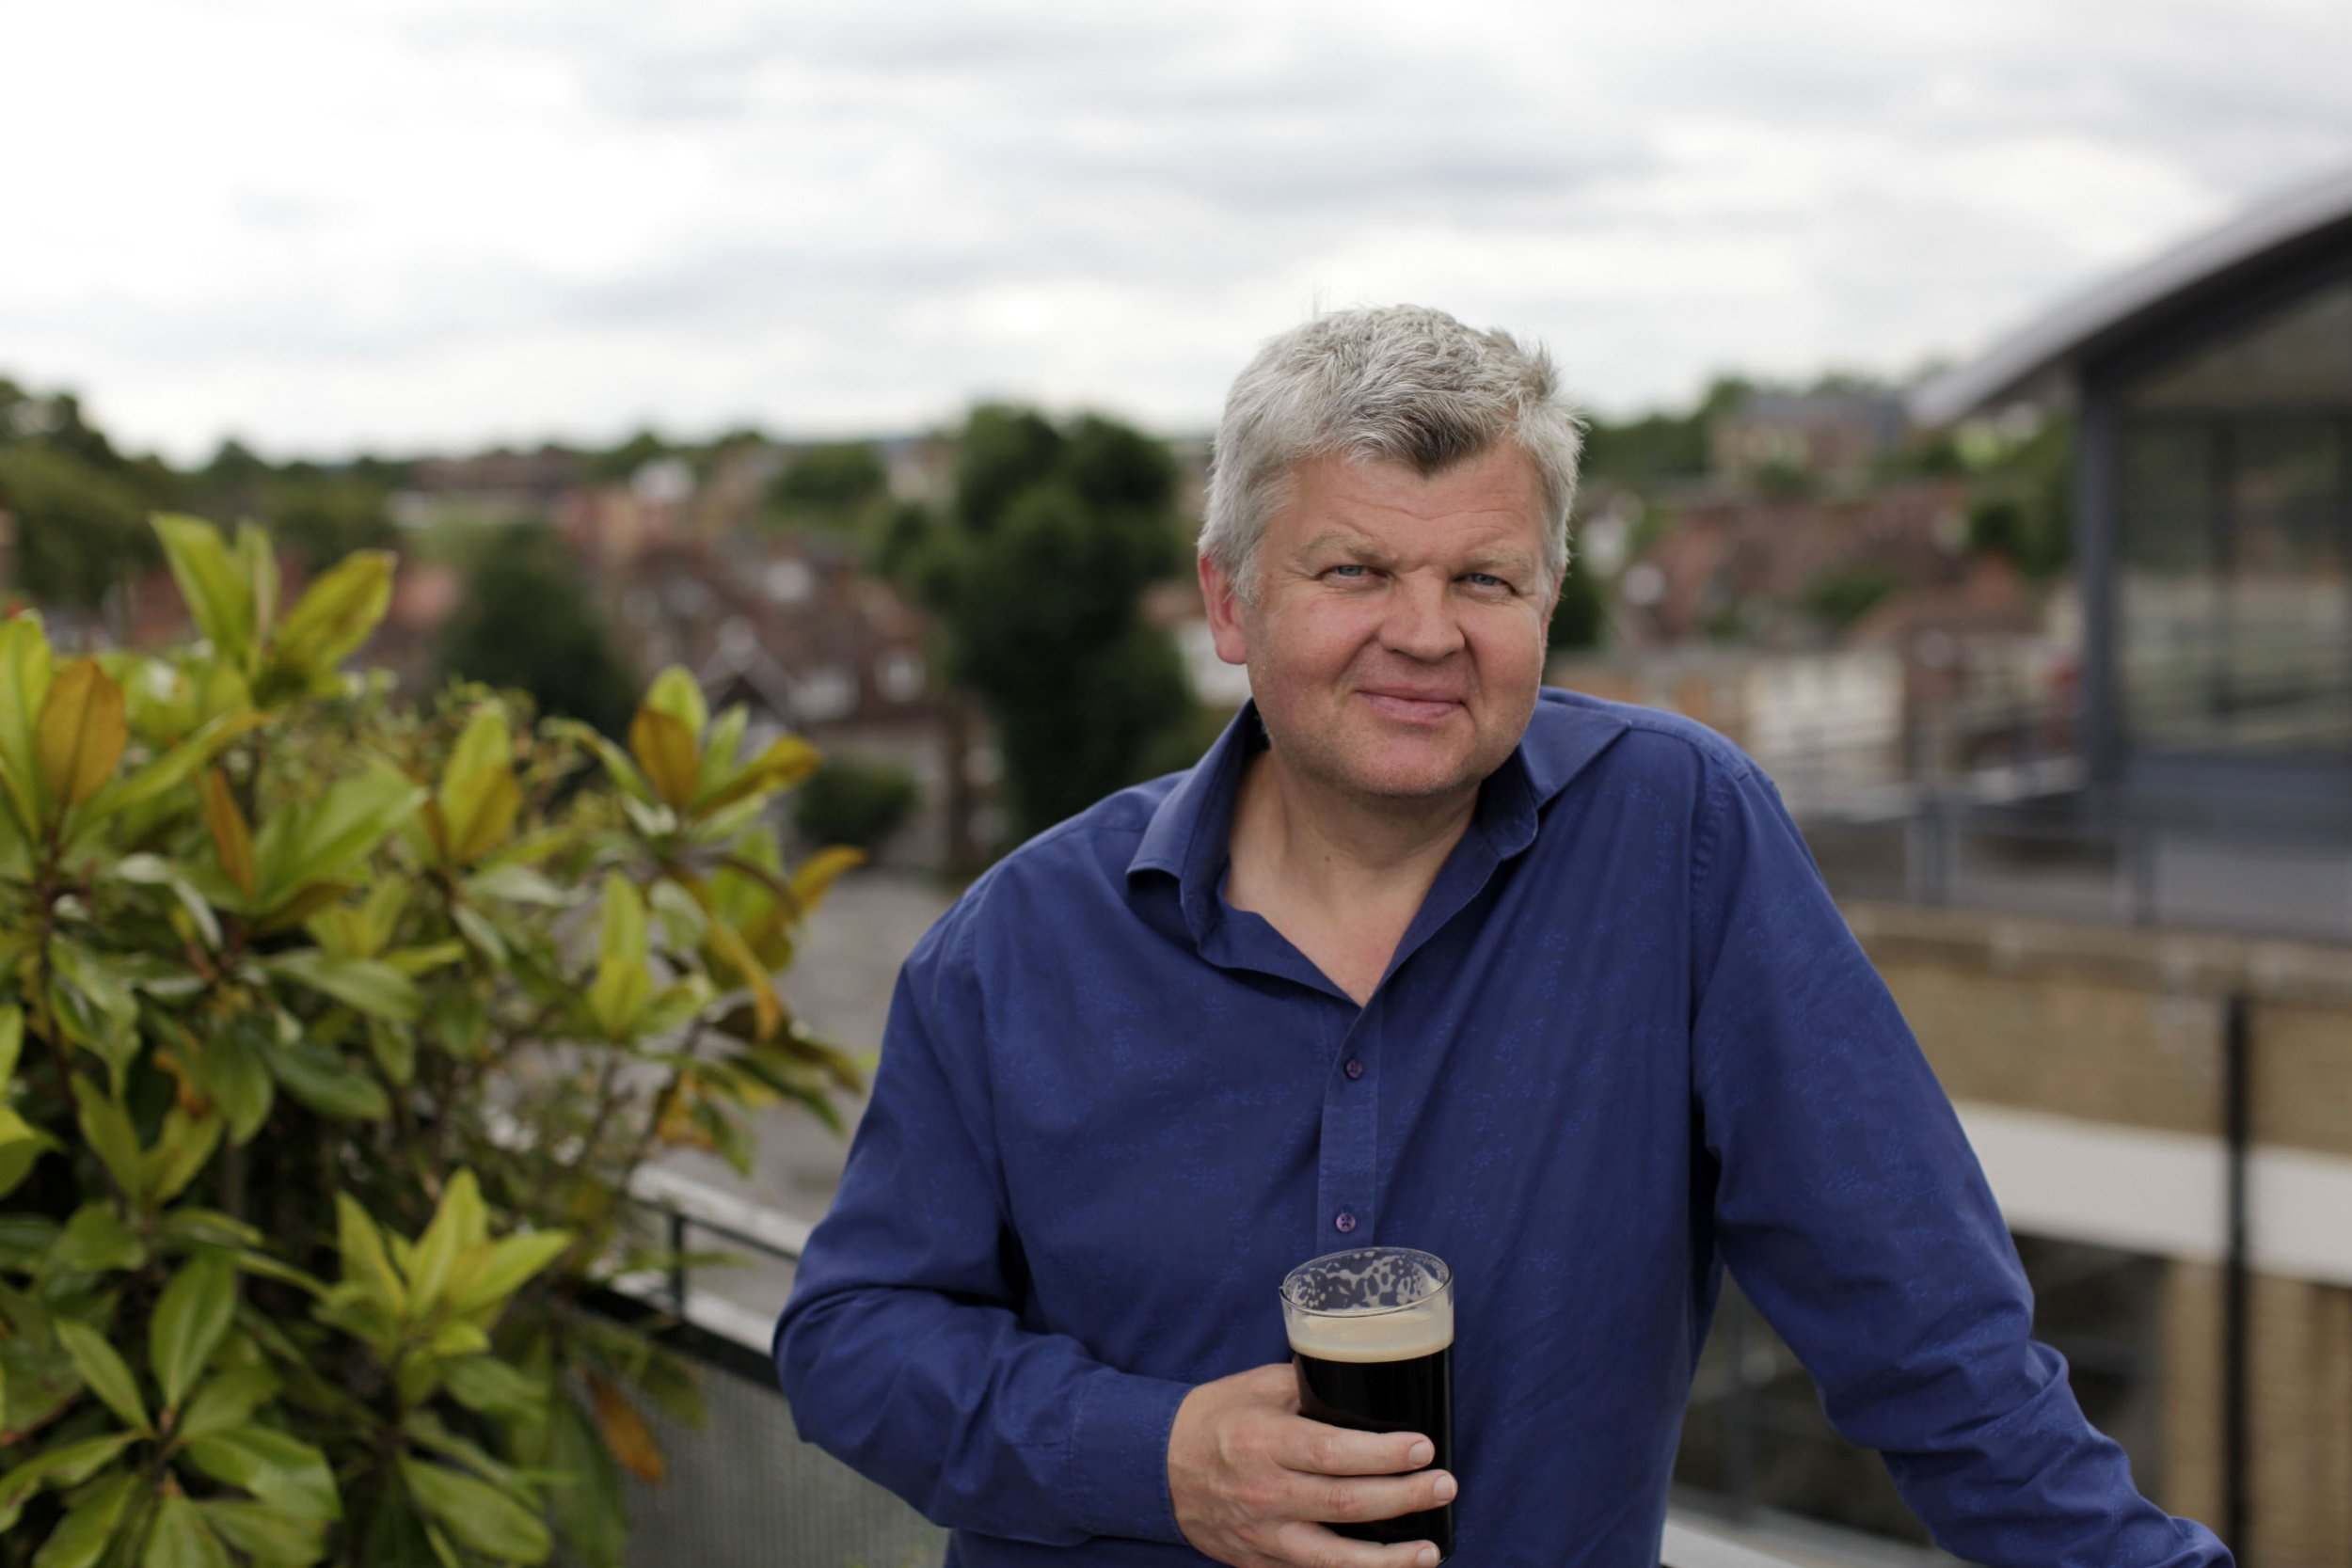 Television programme: Drinkers Like Me - Adrian Chiles - TX: n/a - Episode: Adrian Chiles ??? Drinkers Like Us (No. n/a) - Picture Shows: Adrian Chiles with pint of Guiness - (C) Ricochet Ltd - Photographer: Jonathan Young